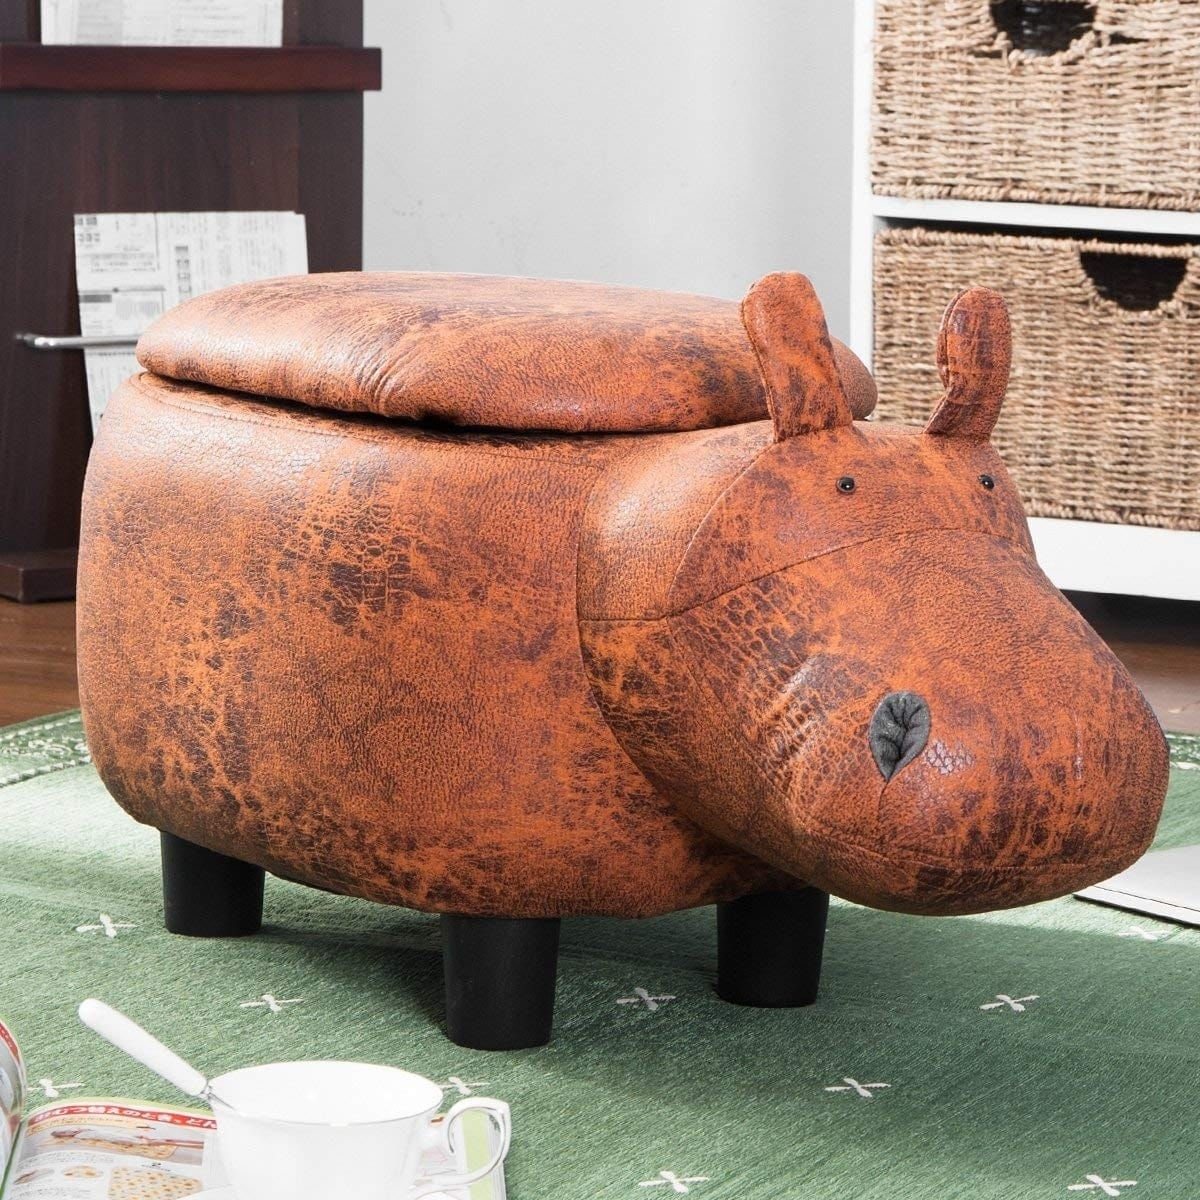 Brown Hippo Animal Storage Ottoman Footrest Stool in room on green carpet